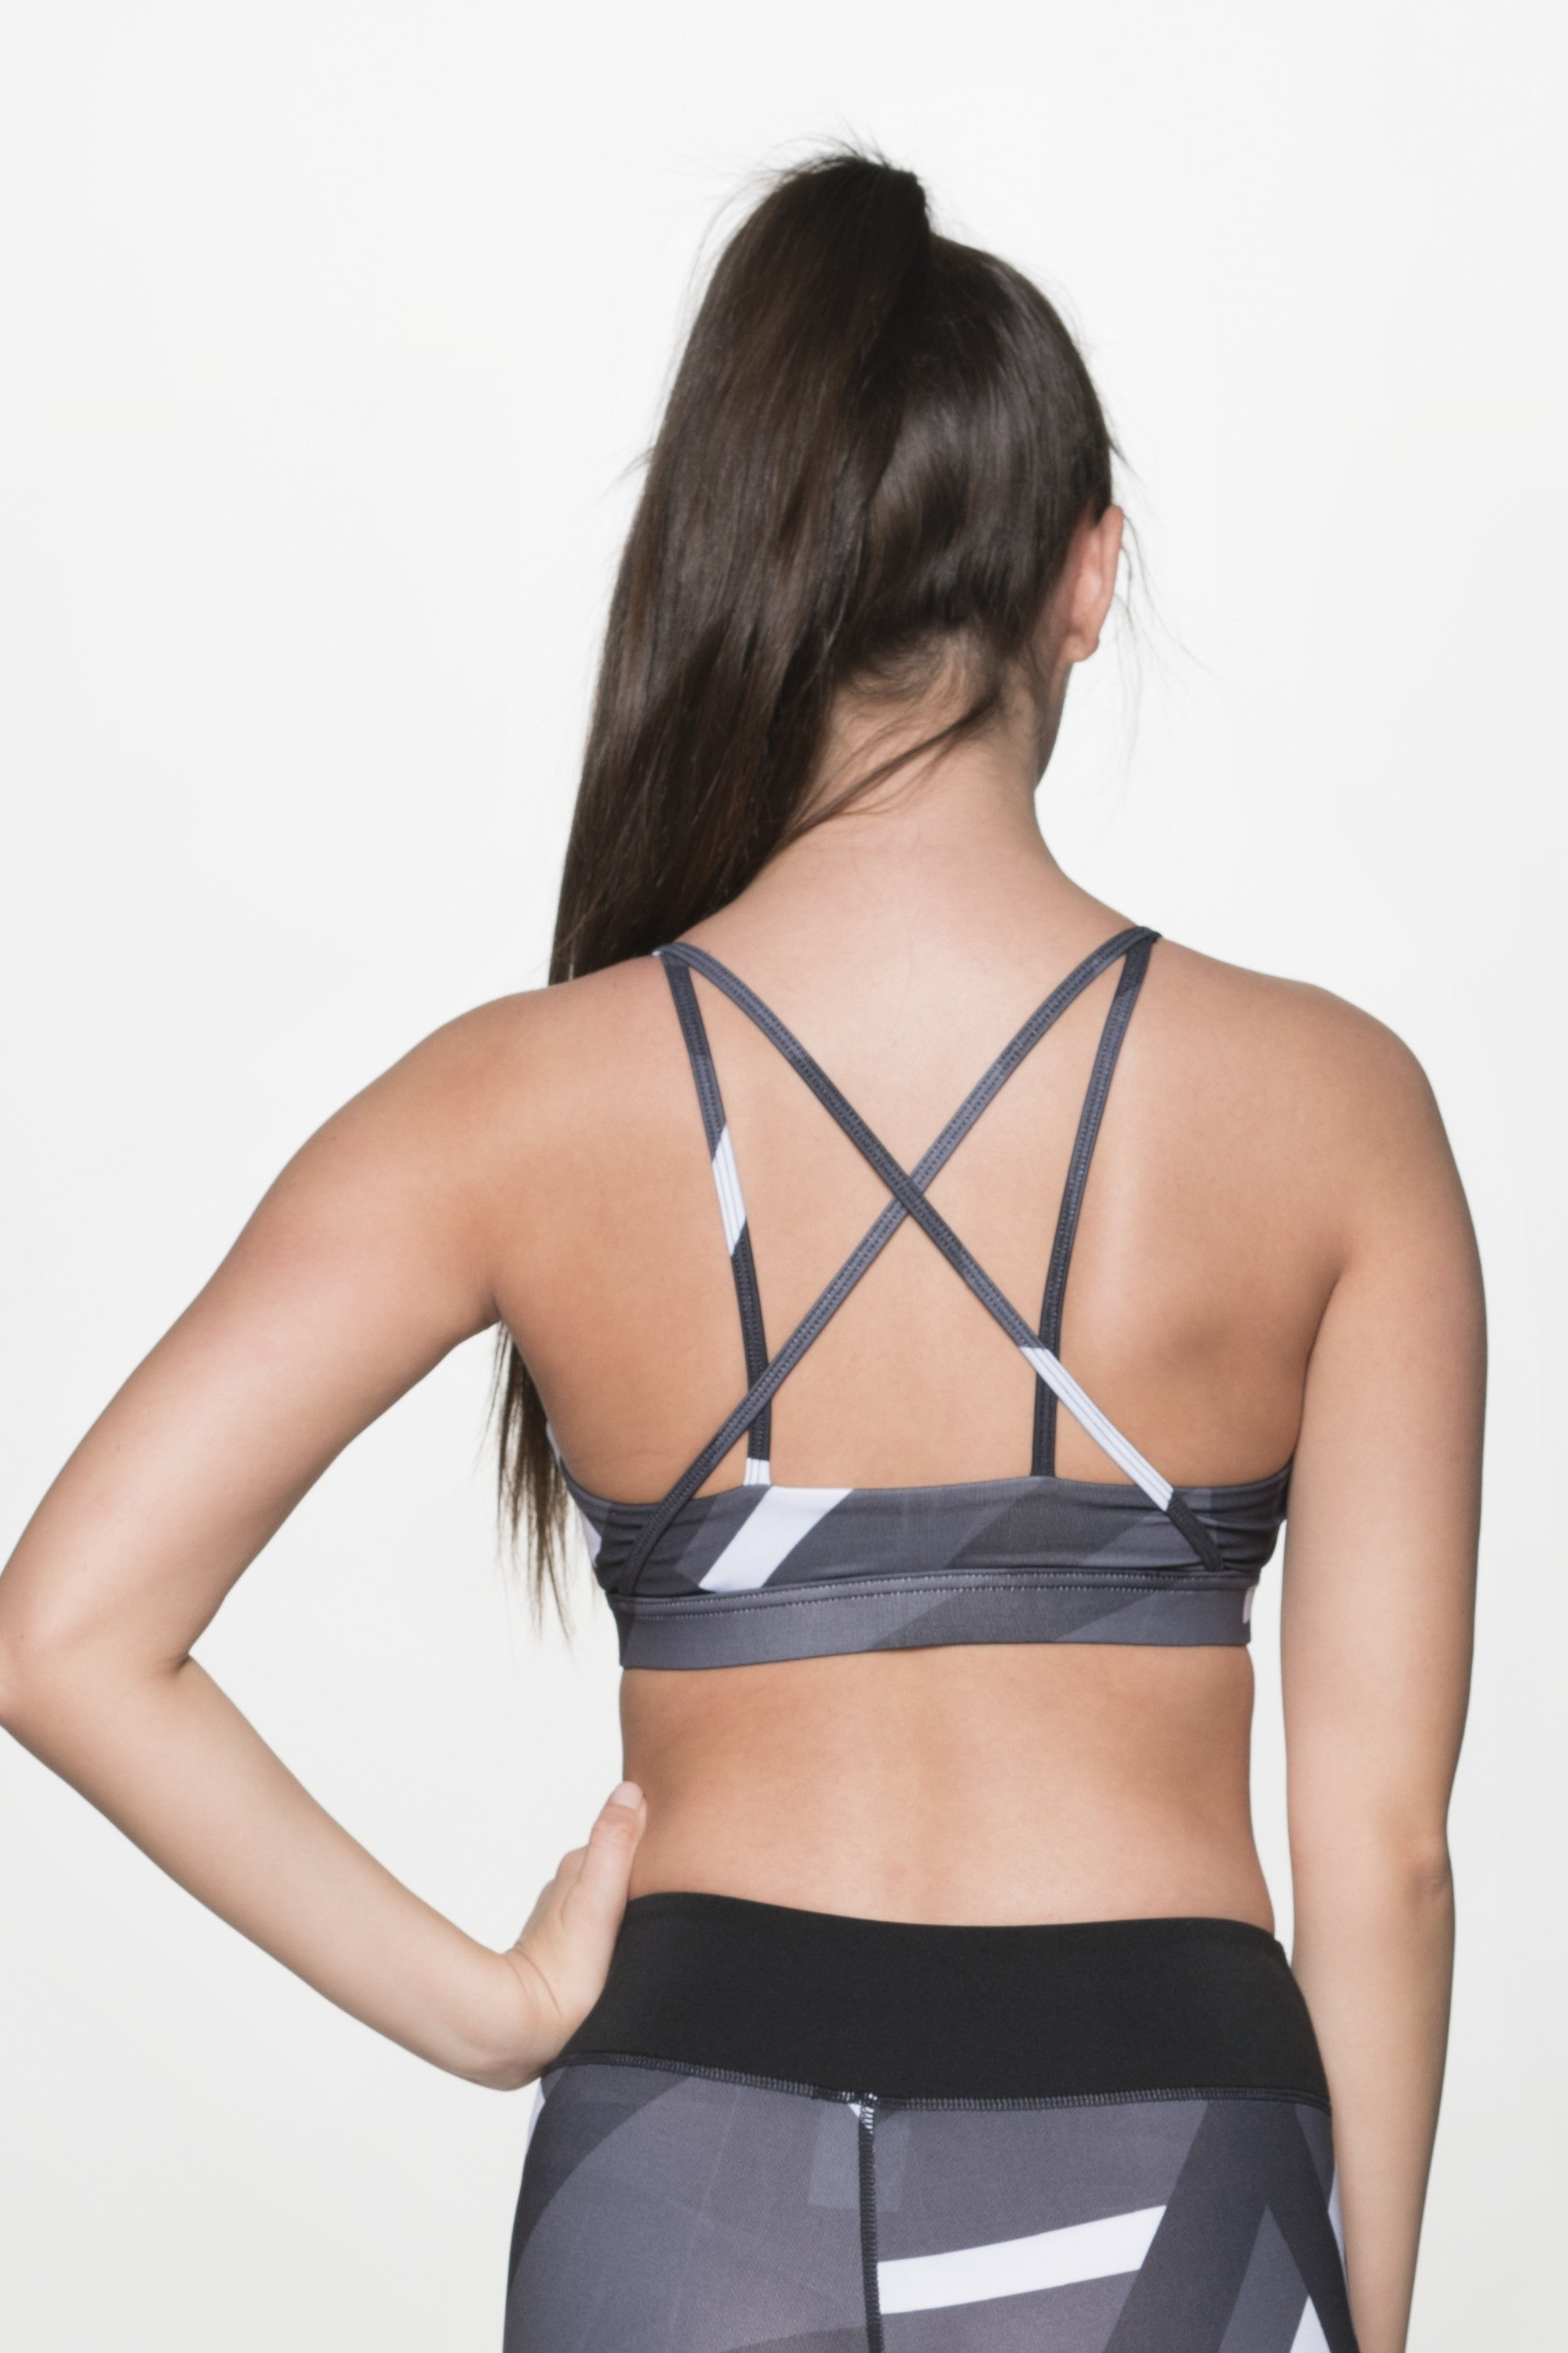 STACY STONE PRINTED SPORTS BRA